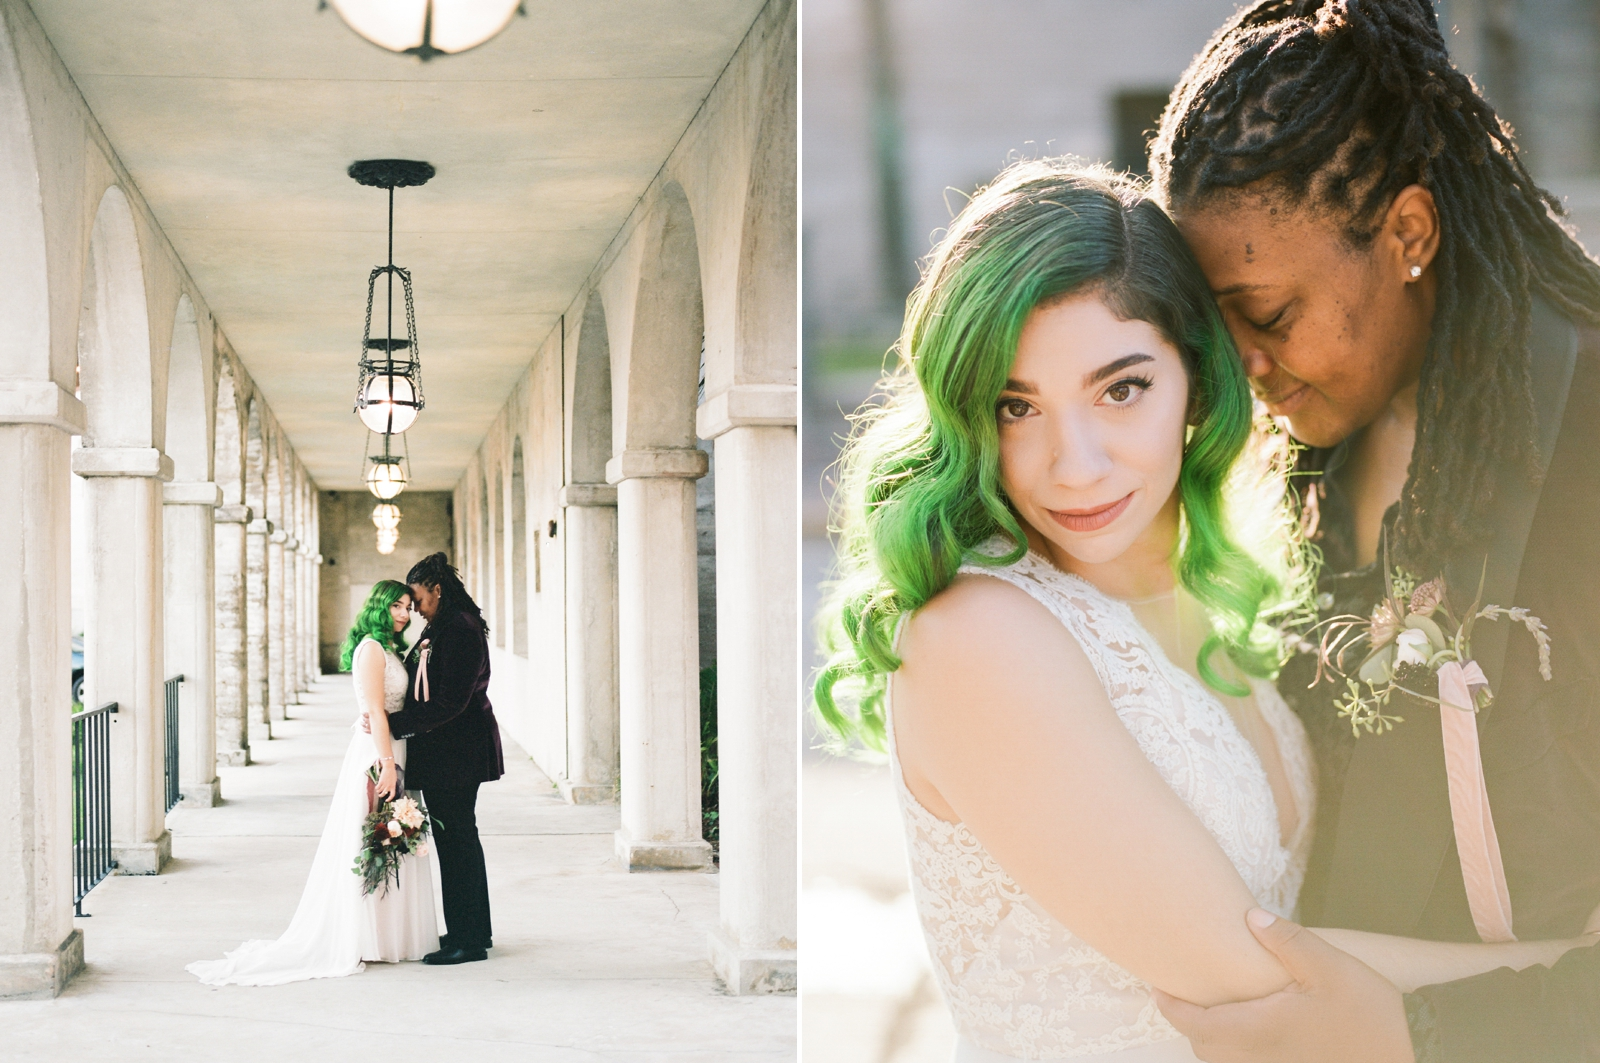 lightner_museum_st_augustine_wedding_photographer_shannon_griffin_0022.jpg